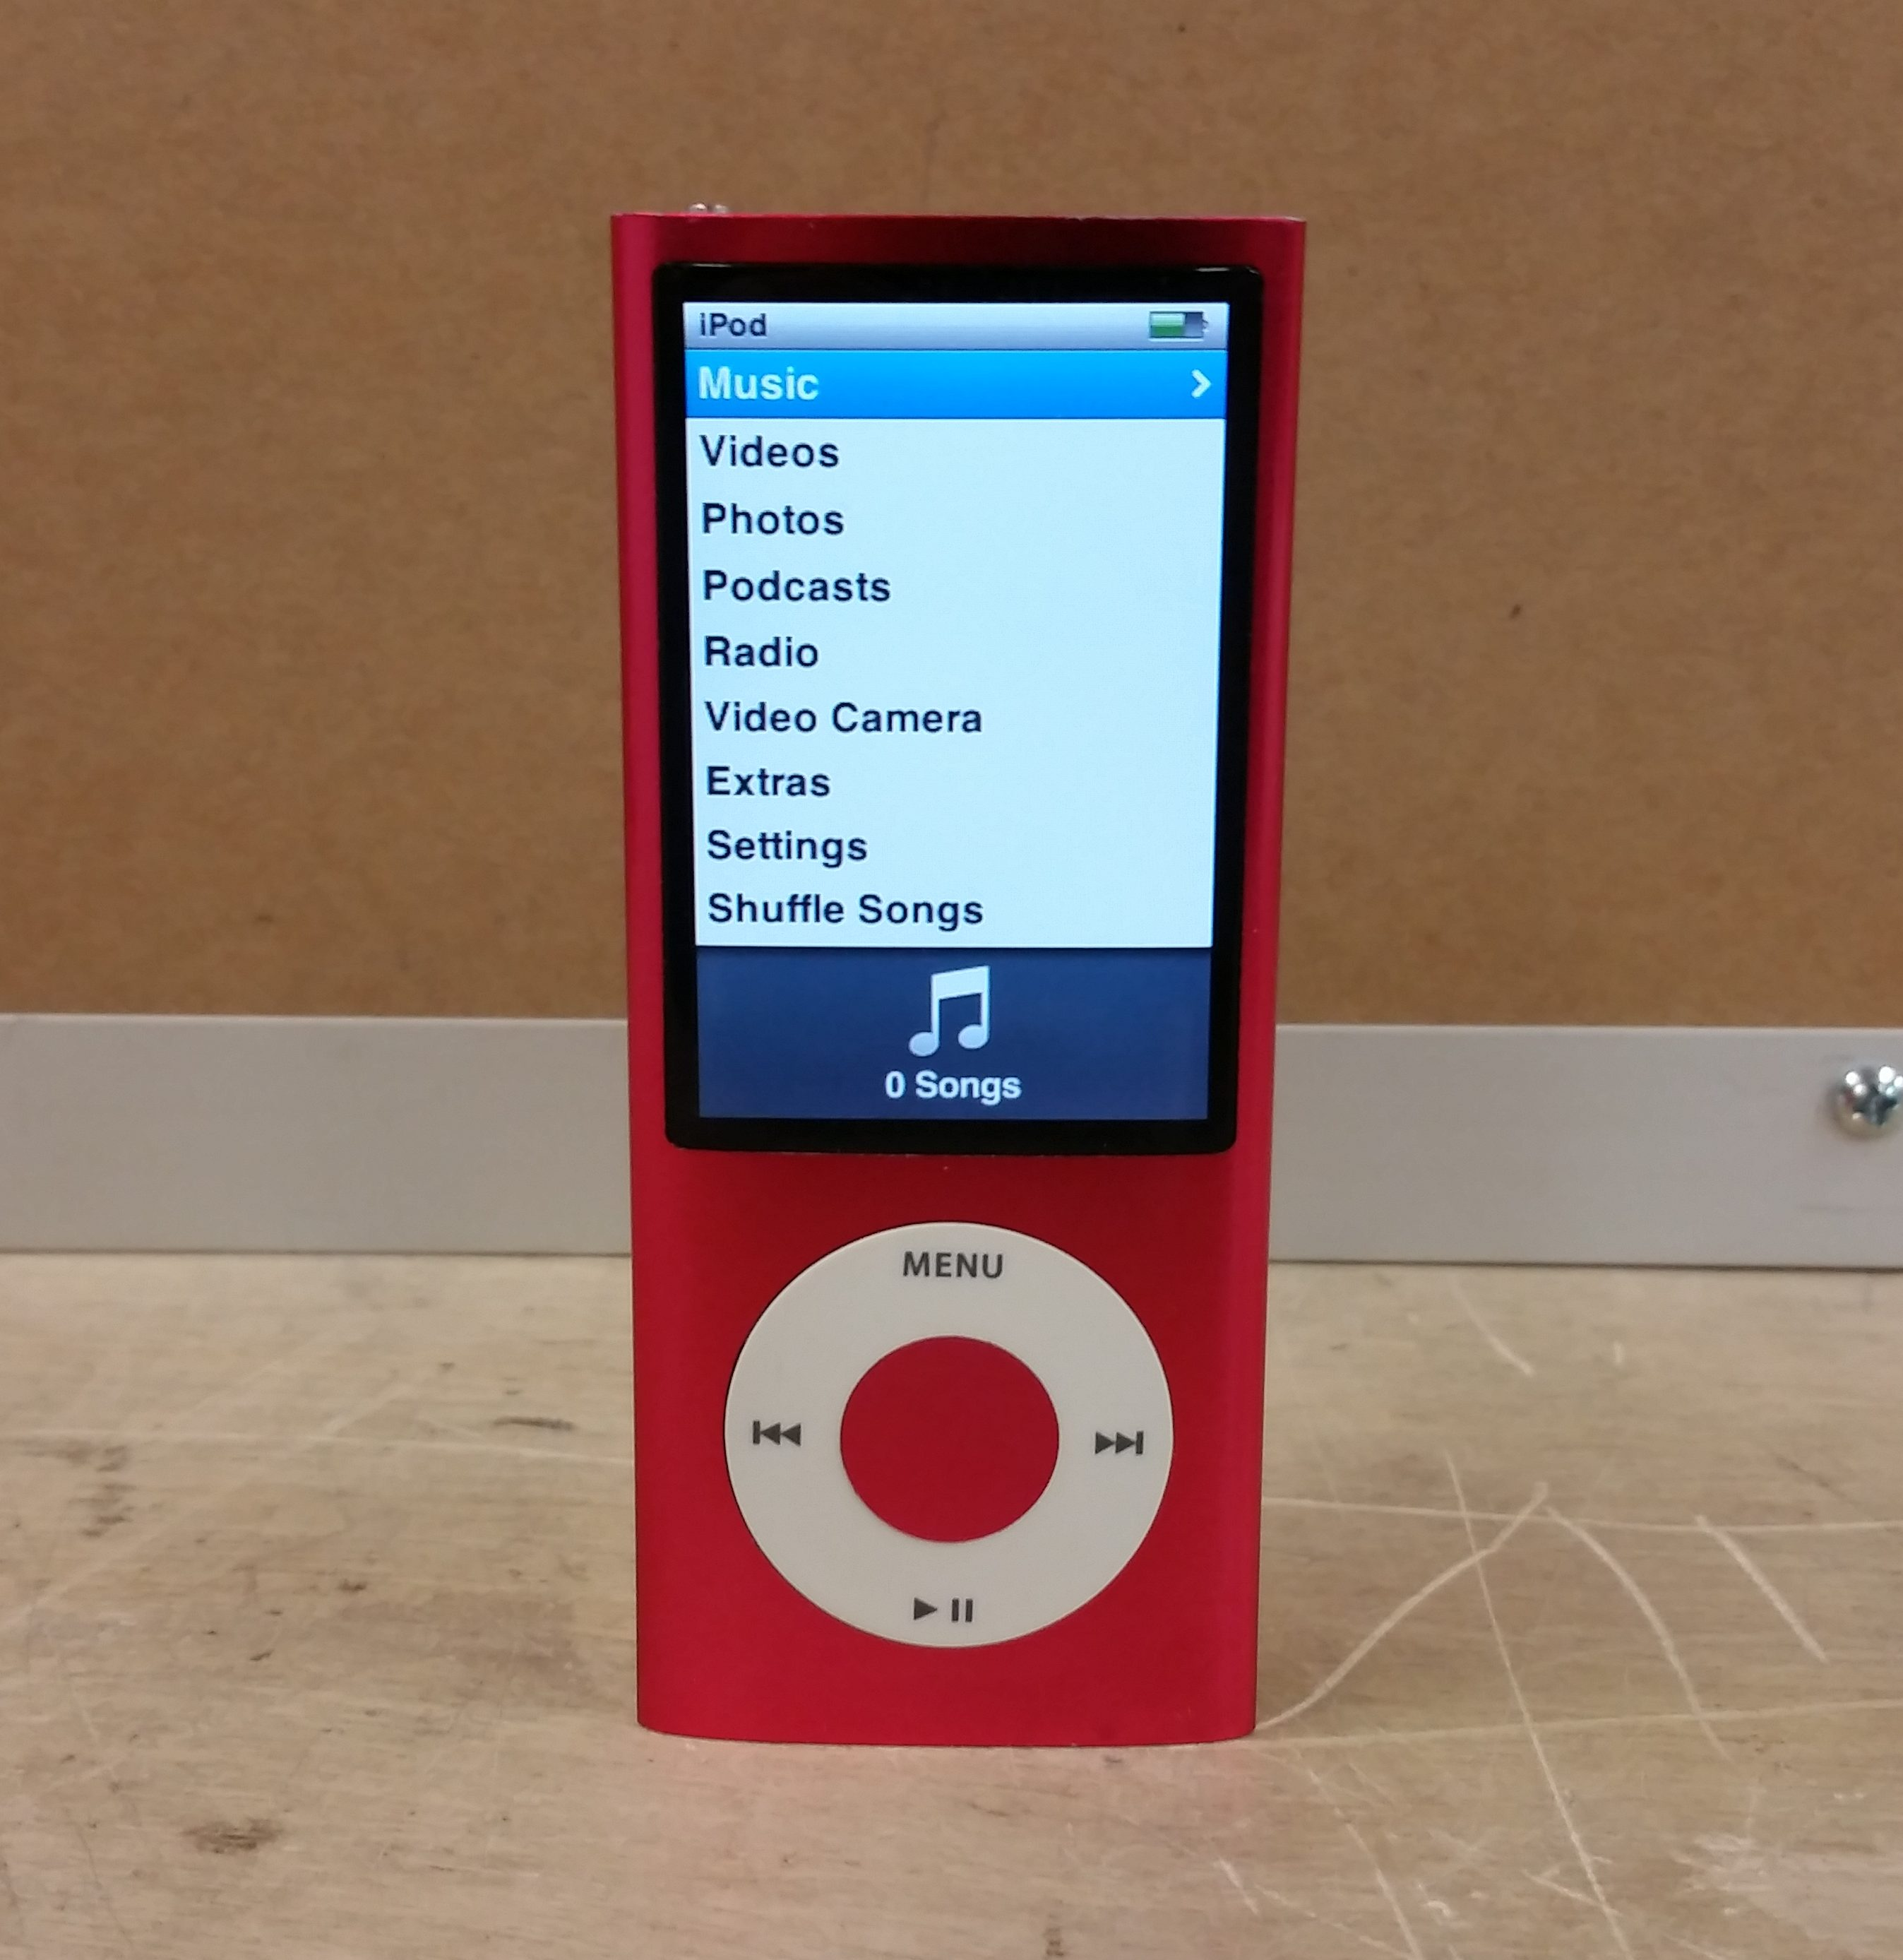 Apple iPod Nano 5th Gen A1320 8GB Used – Buy-Sell Electronics